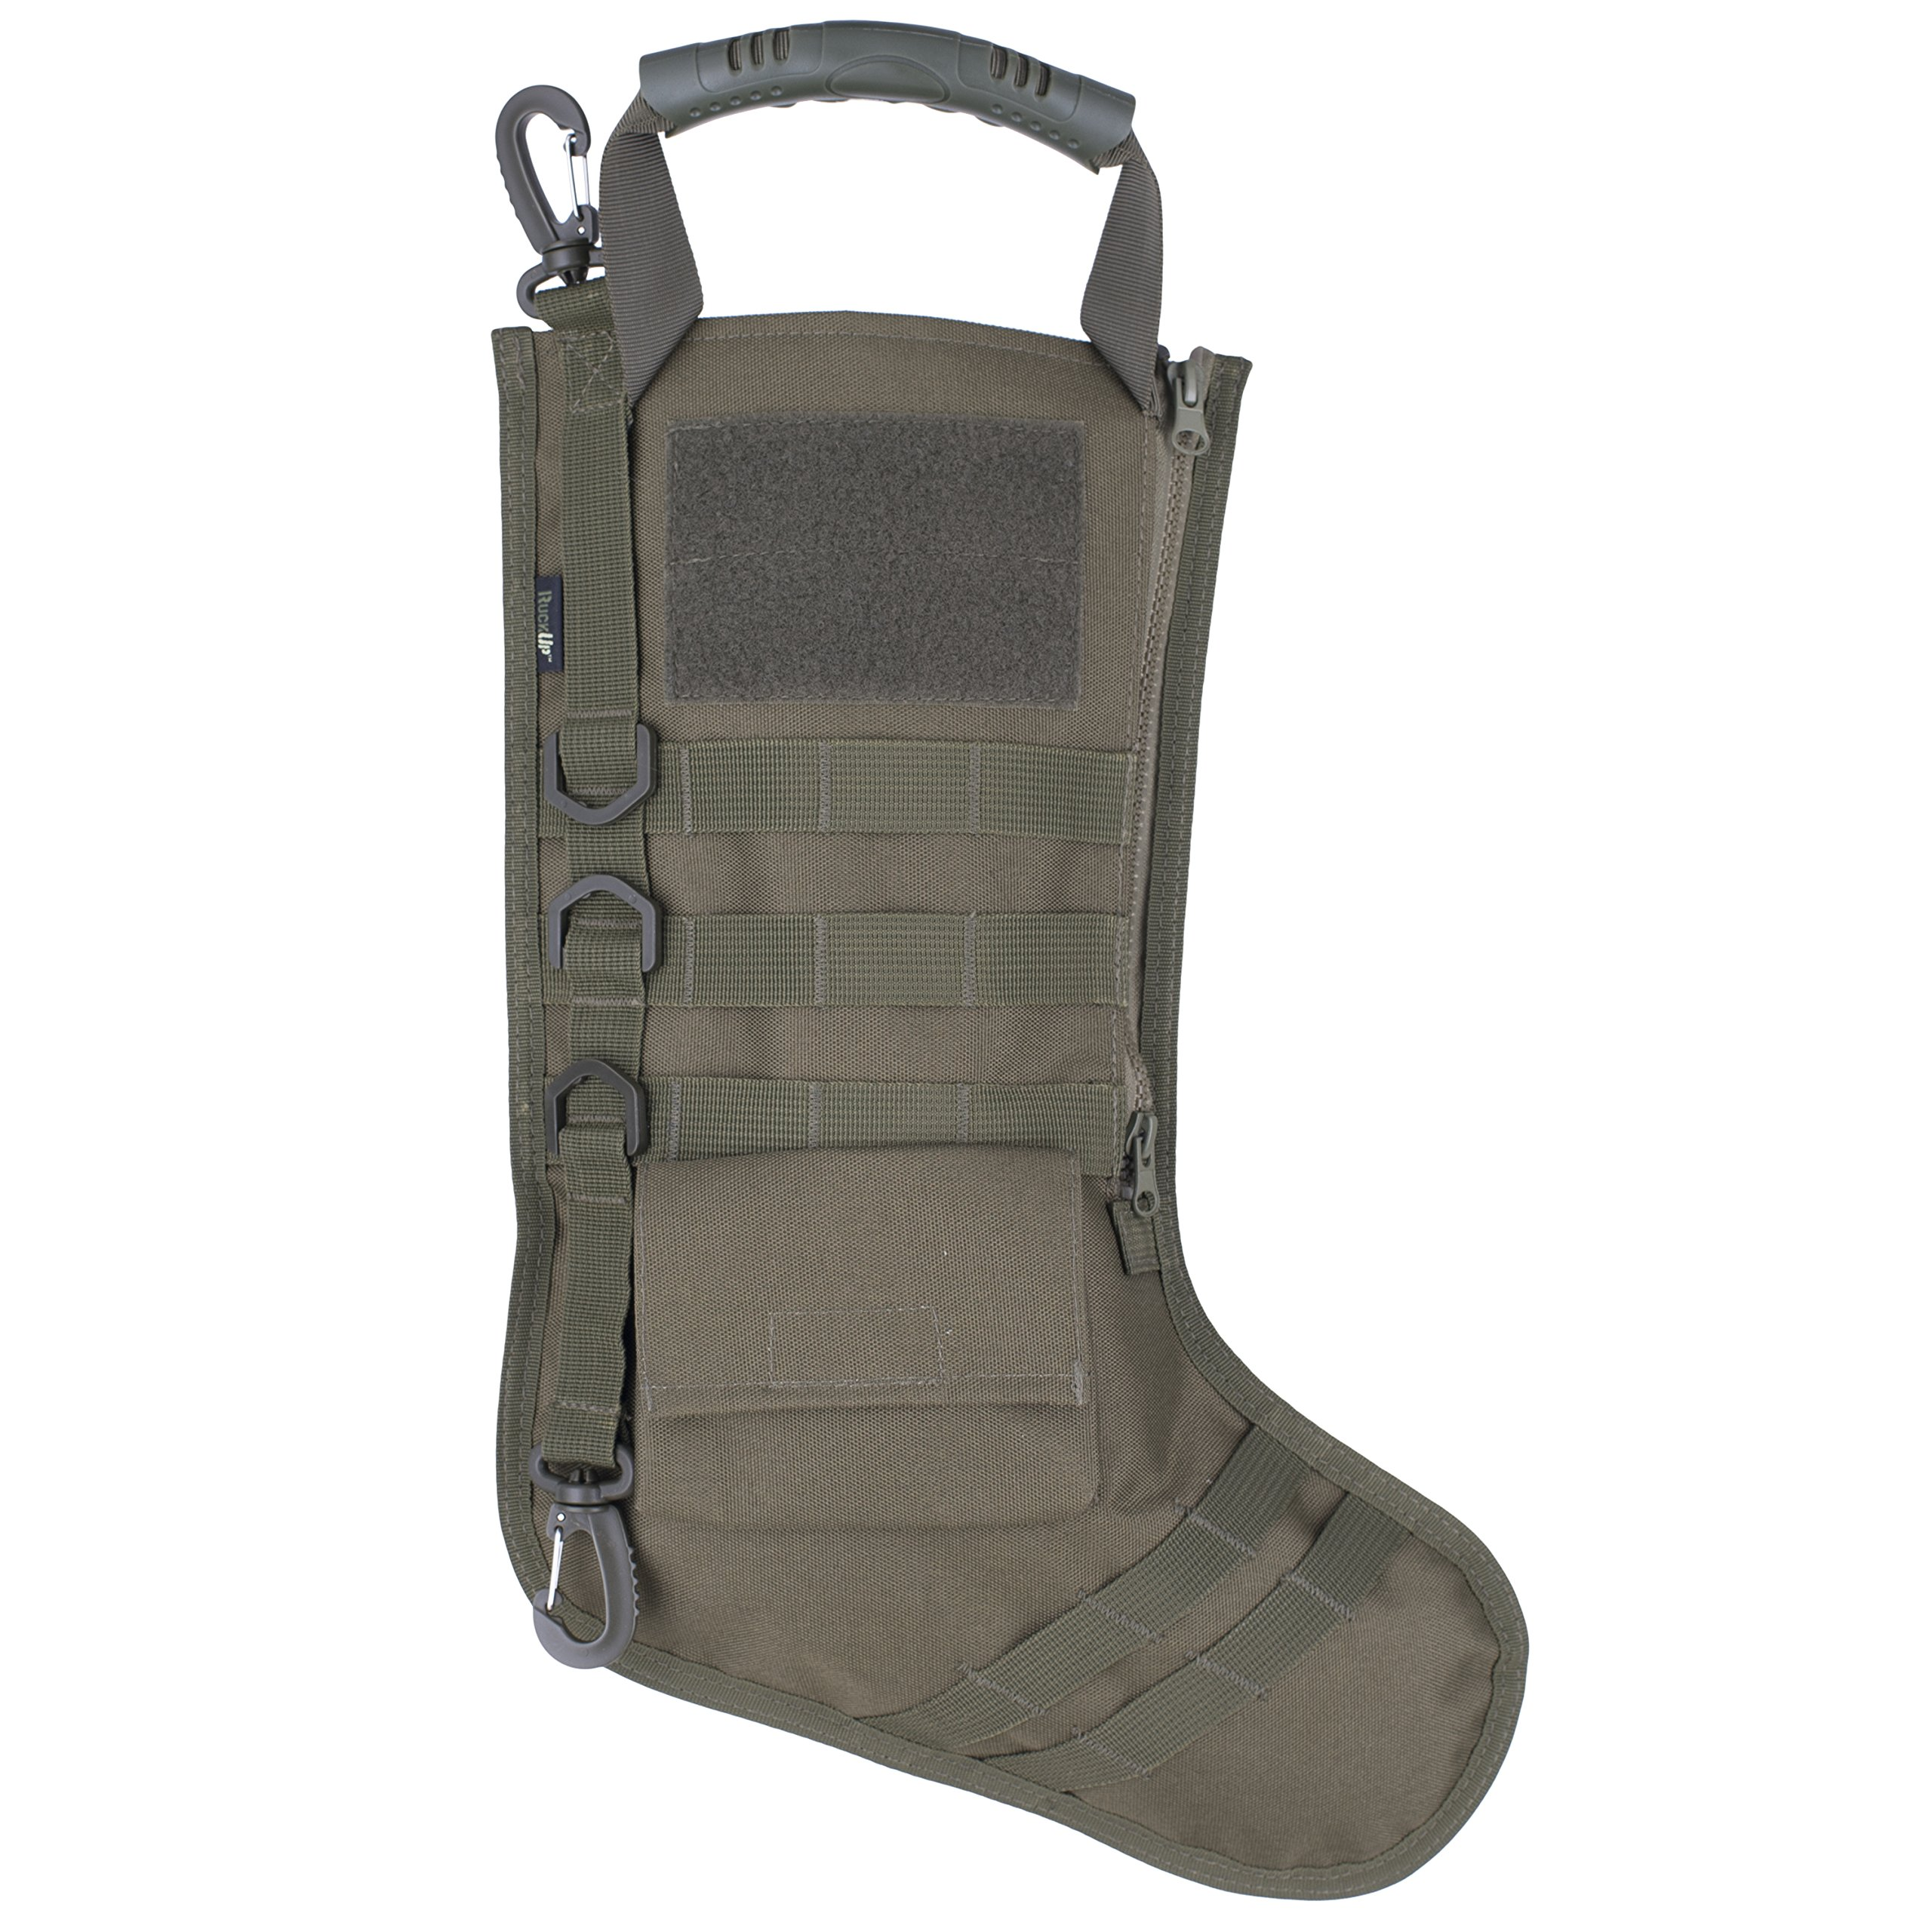 RUCKUP RUXMTSG Tactical Christmas Stocking, Full, OD Green